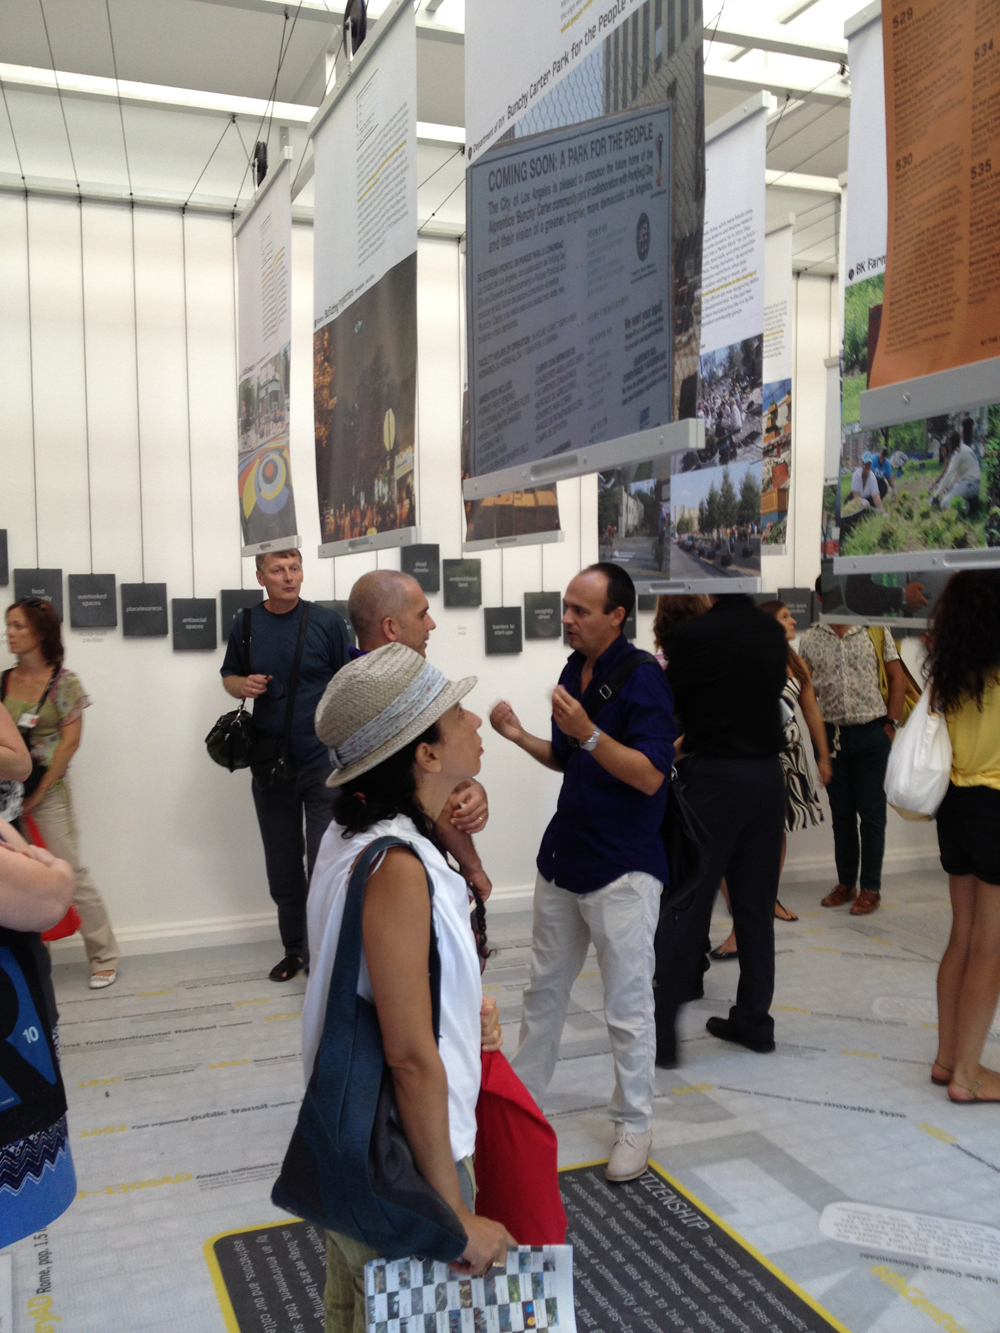 The interactive nature of the project boards made the work in the U.S. Pavilion both an approachable and easily digestible experience by both the visiting press and public.